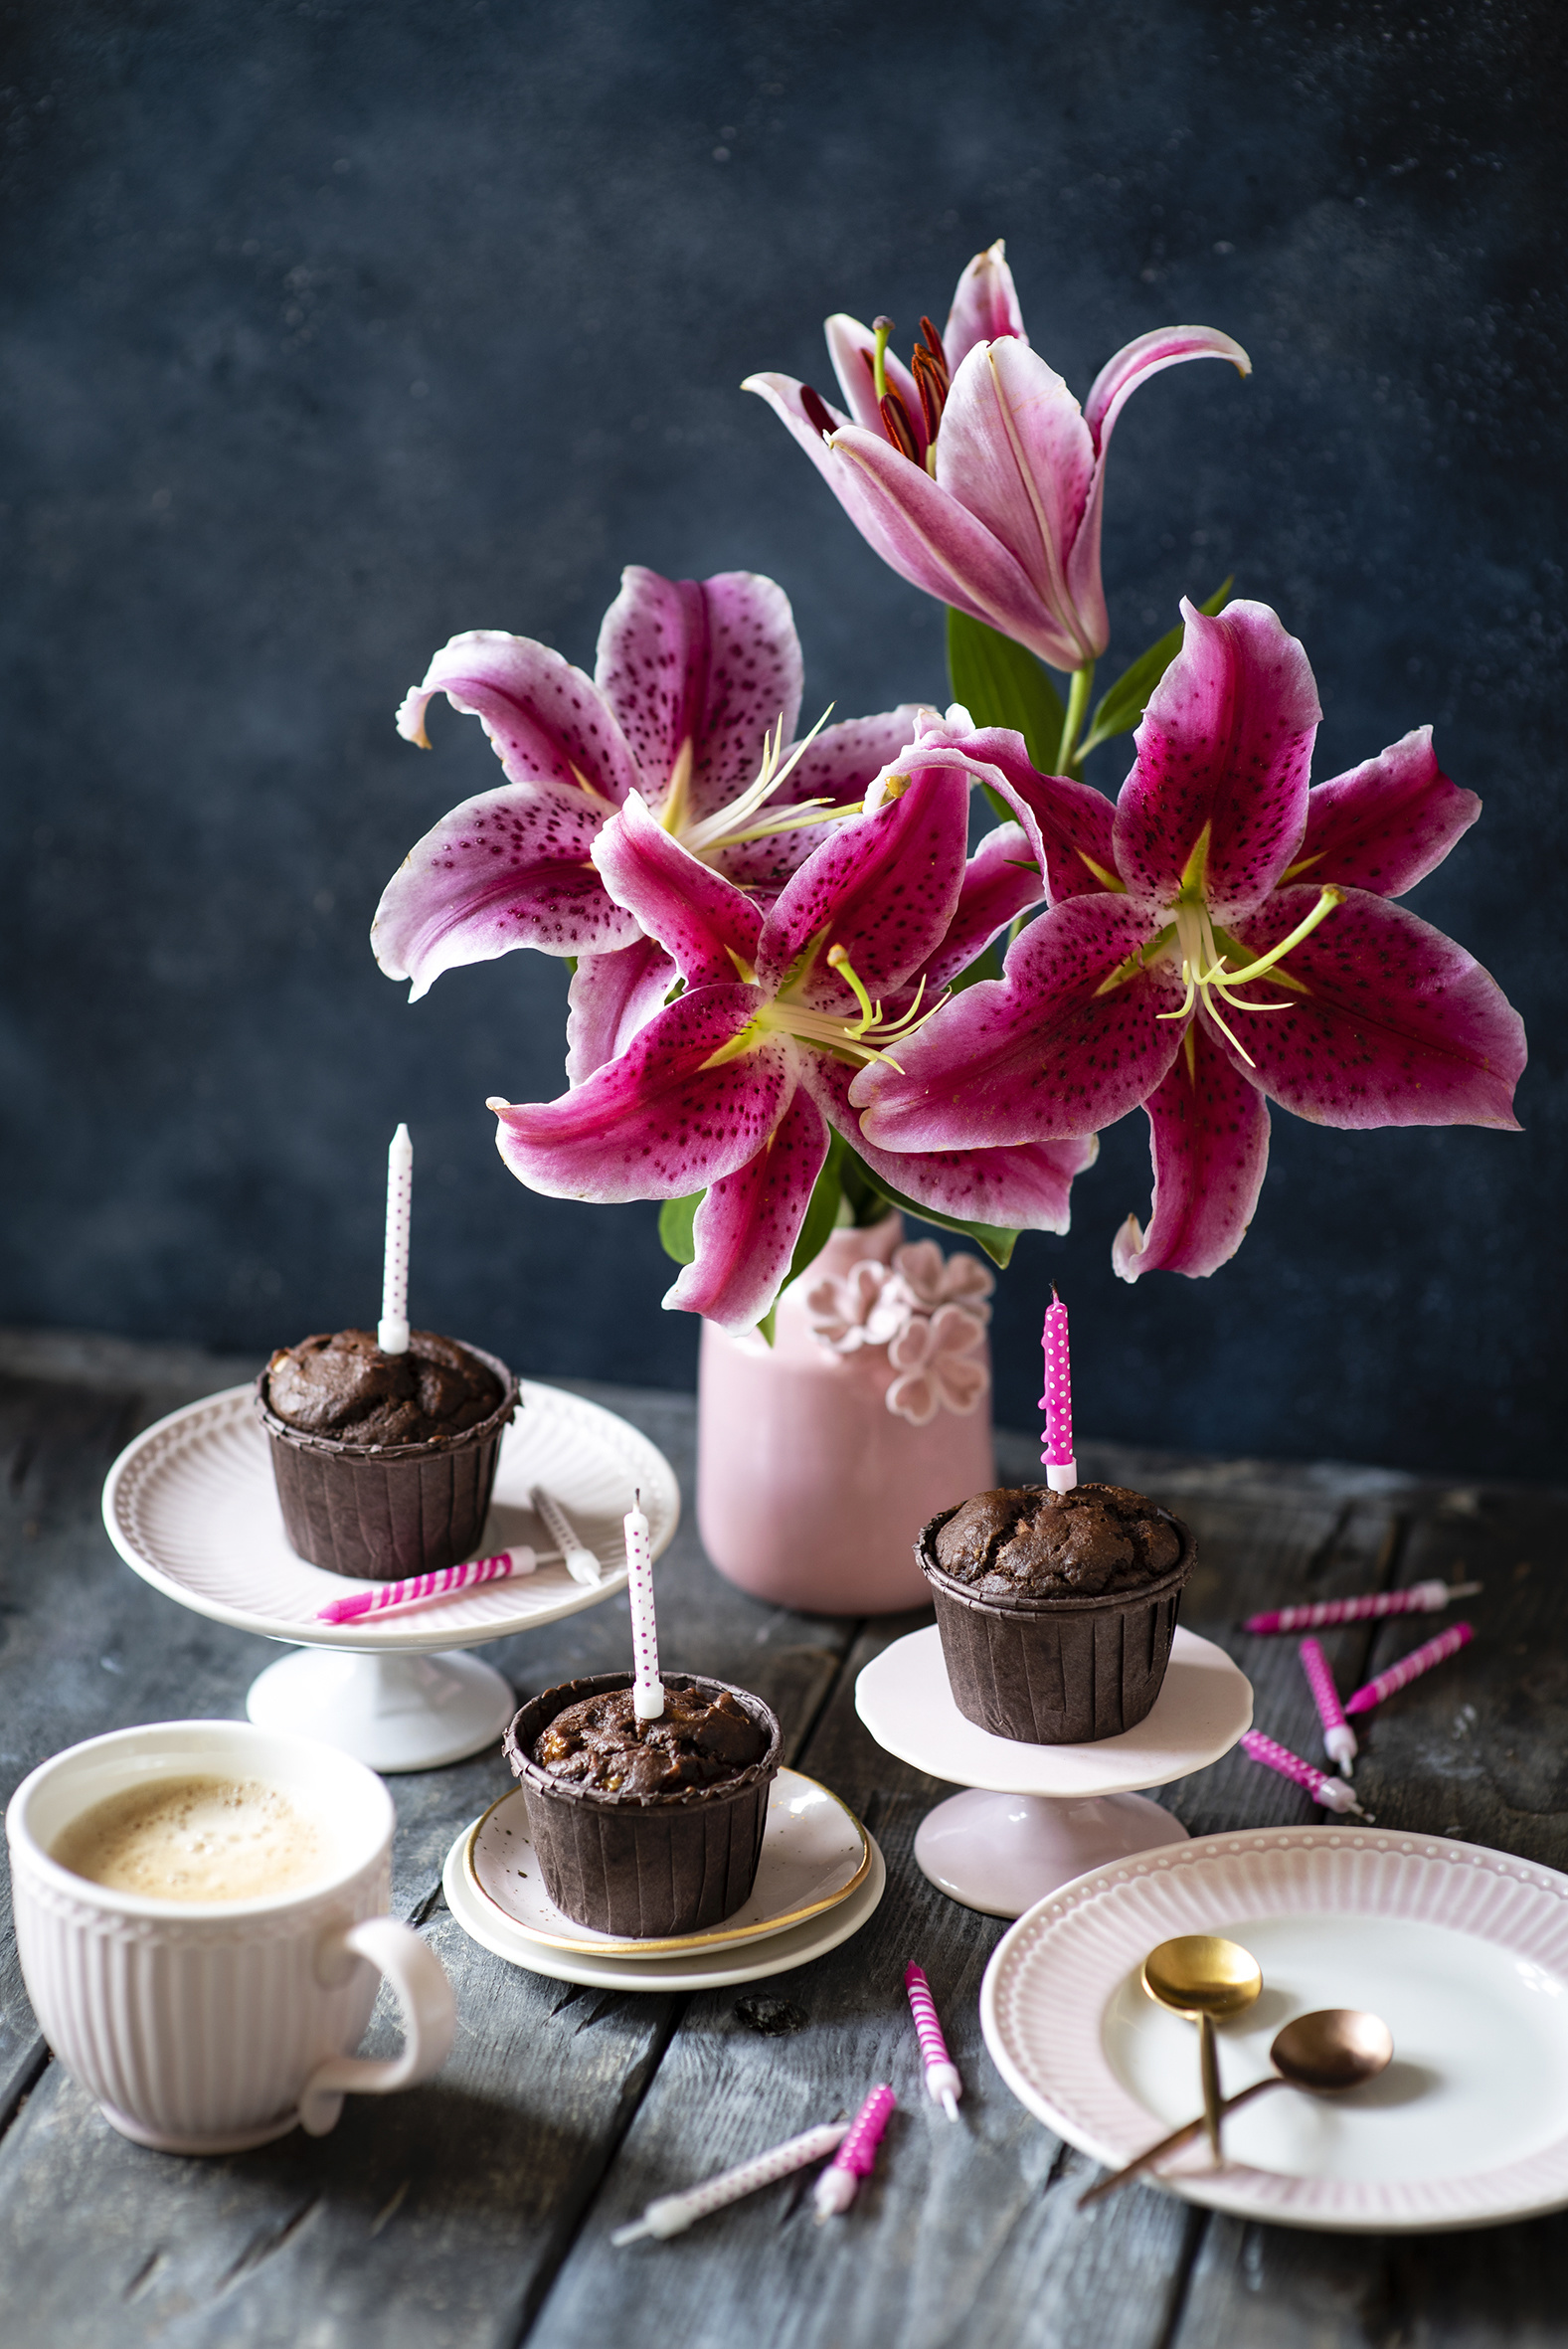 Images Lilies Coffee fairy cake Cappuccino Flowers Cup Vase Food Plate Candles  for Mobile phone lilium Cupcake flower